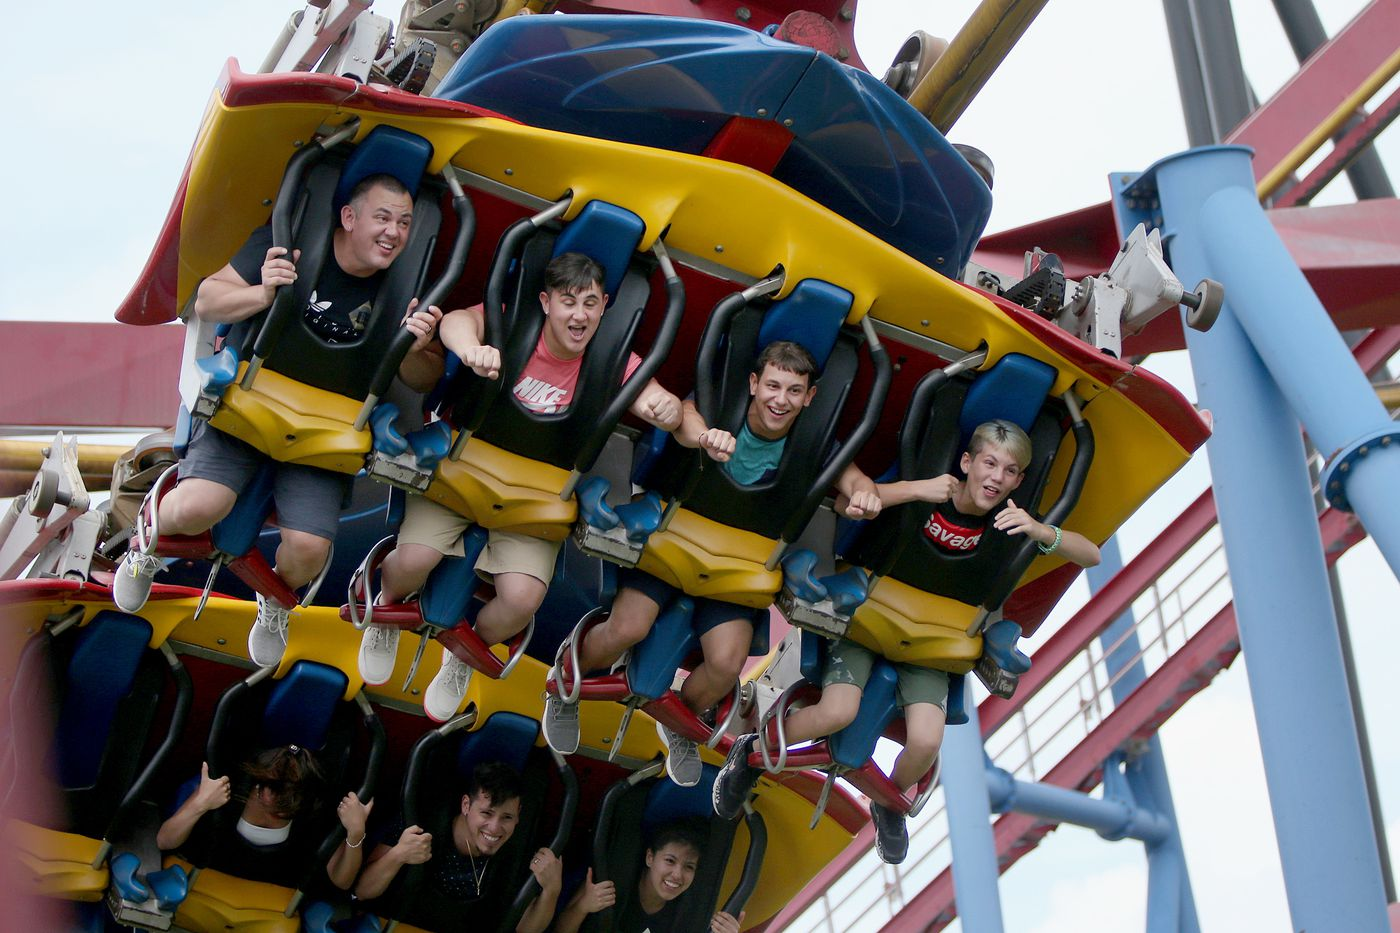 People on the Superman roller-coaster at Great Adventure.